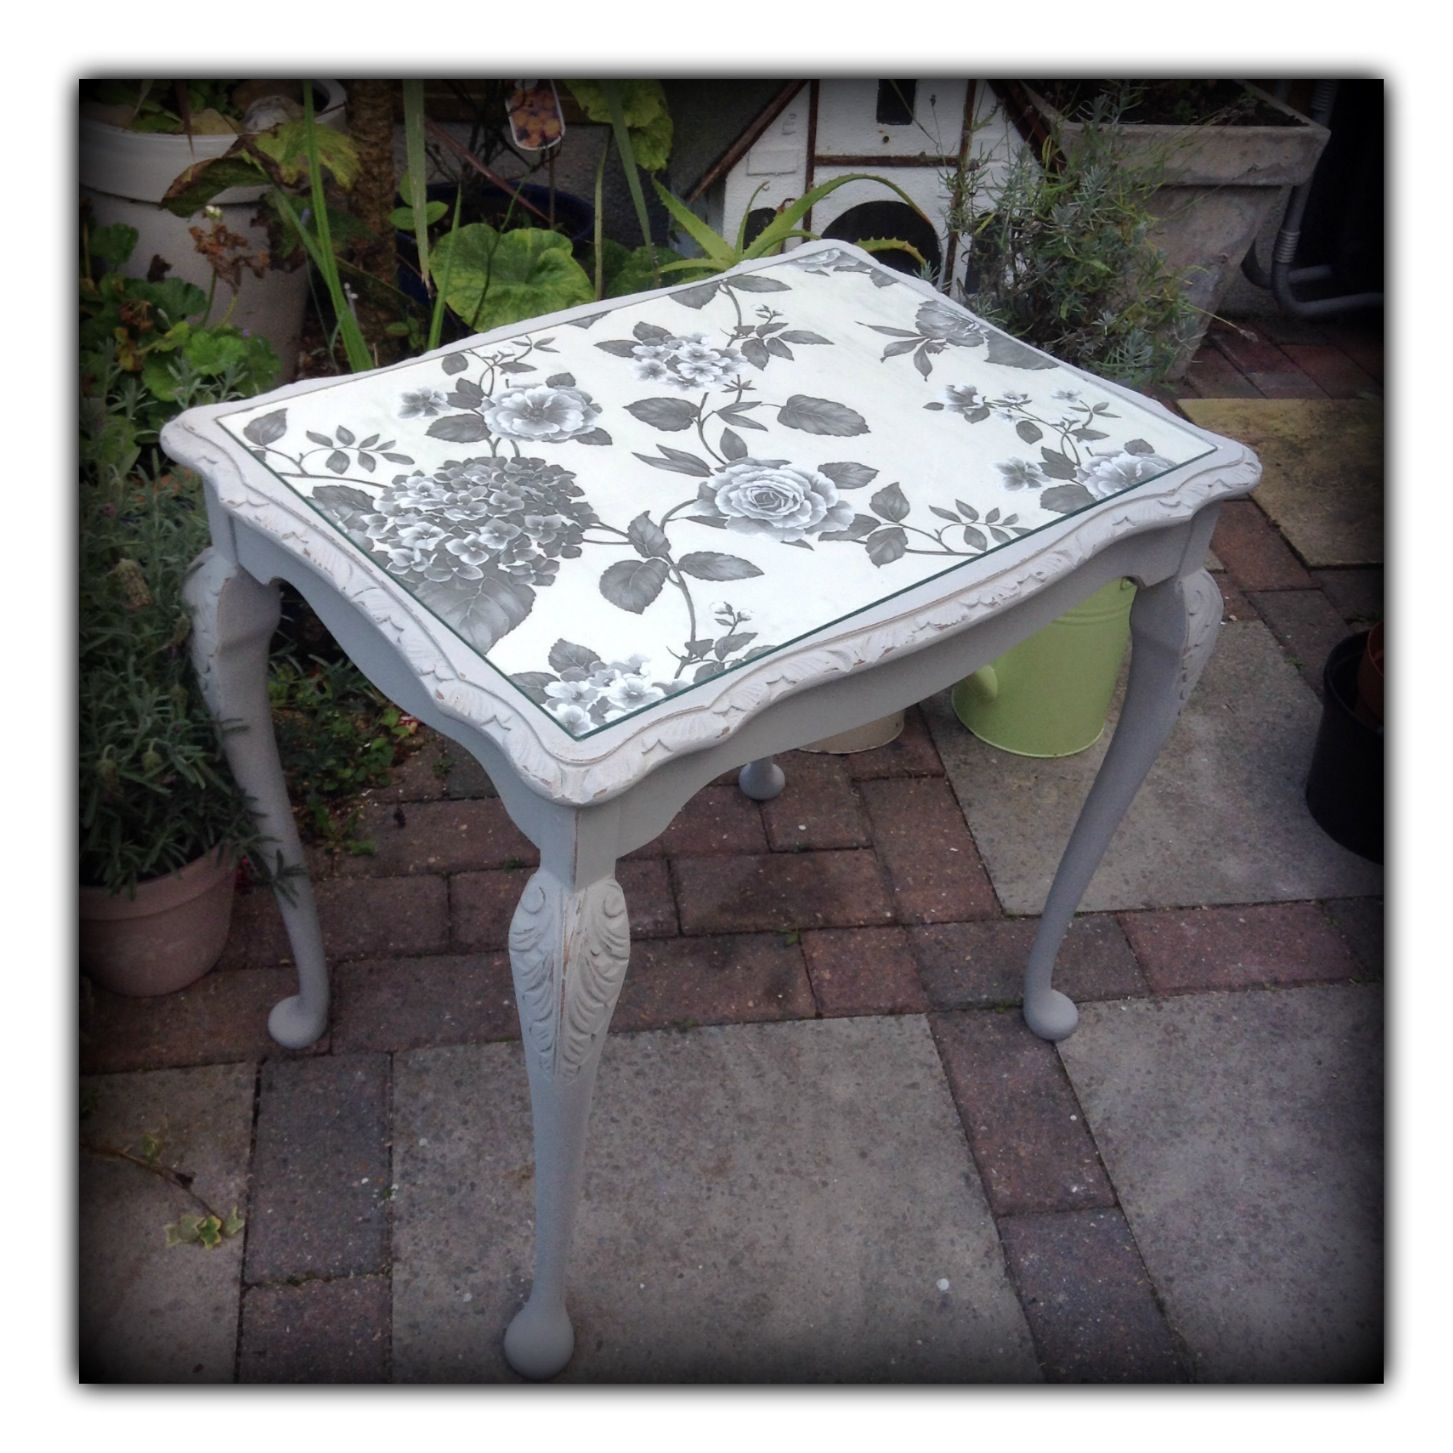 floral decoupage furniture. Floral Decoupage Furniture. Table Painted In Annie Sloan Paris Grey With Cream And Furniture